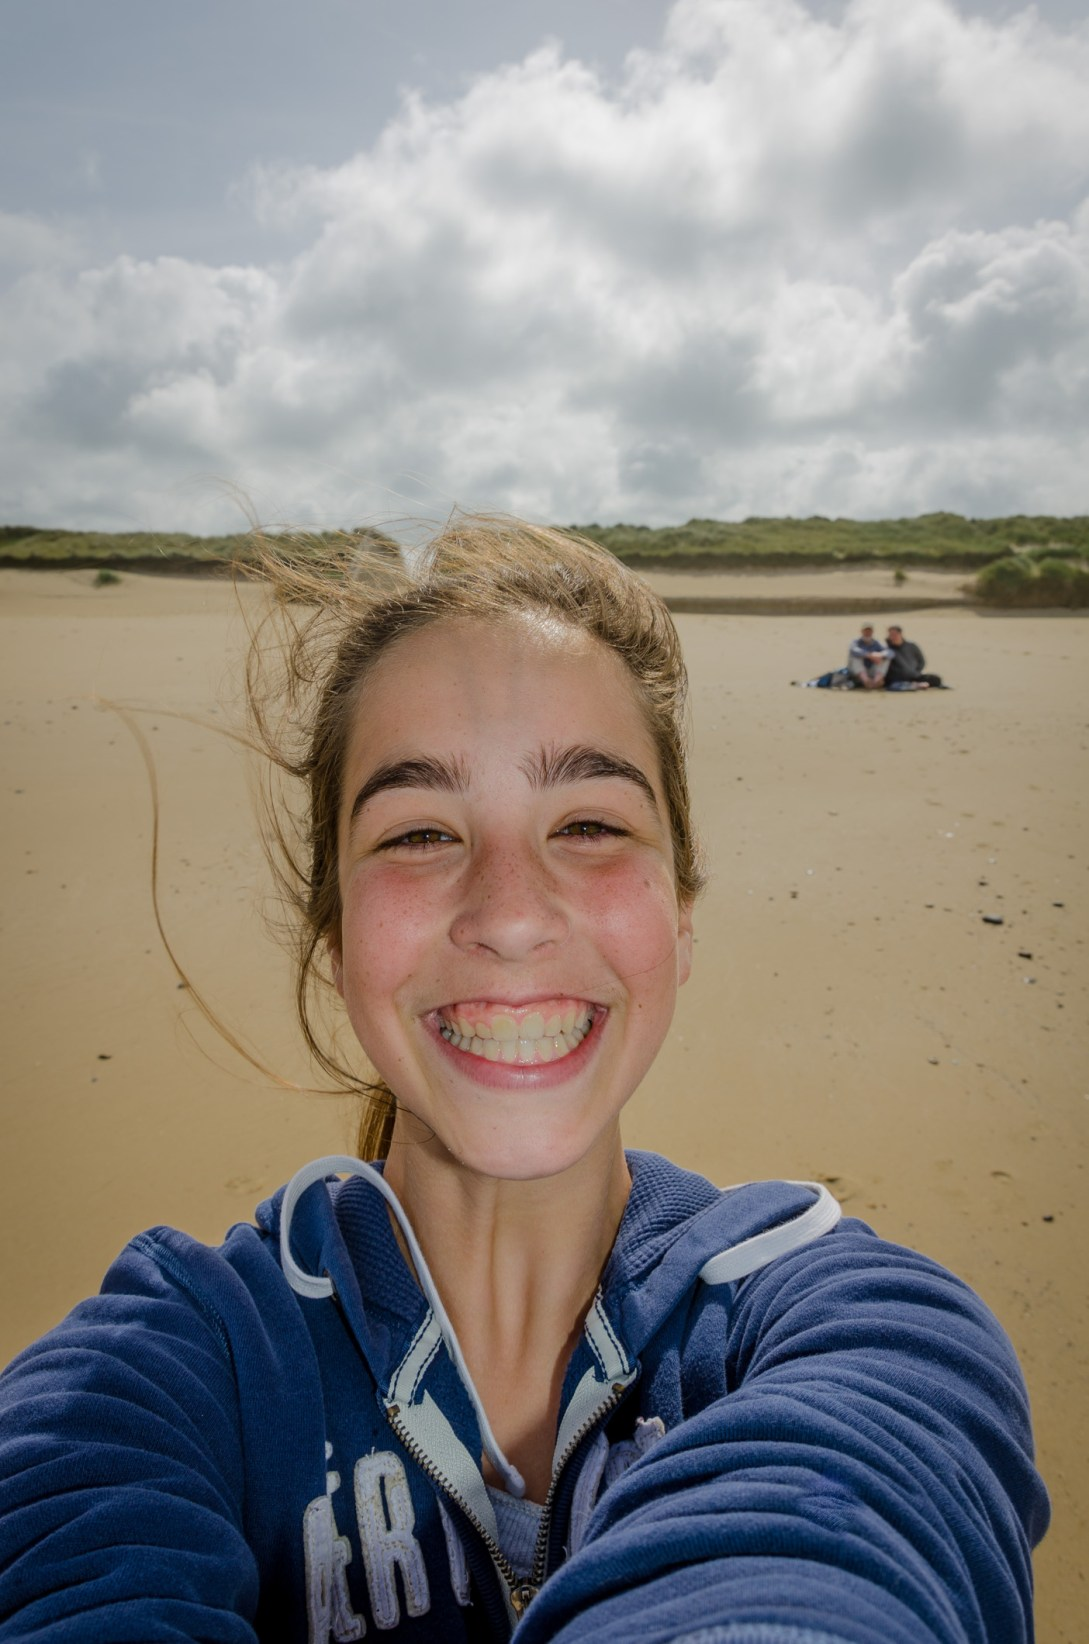 Selfie - Lanie on the beach with Ginger and Gary in background